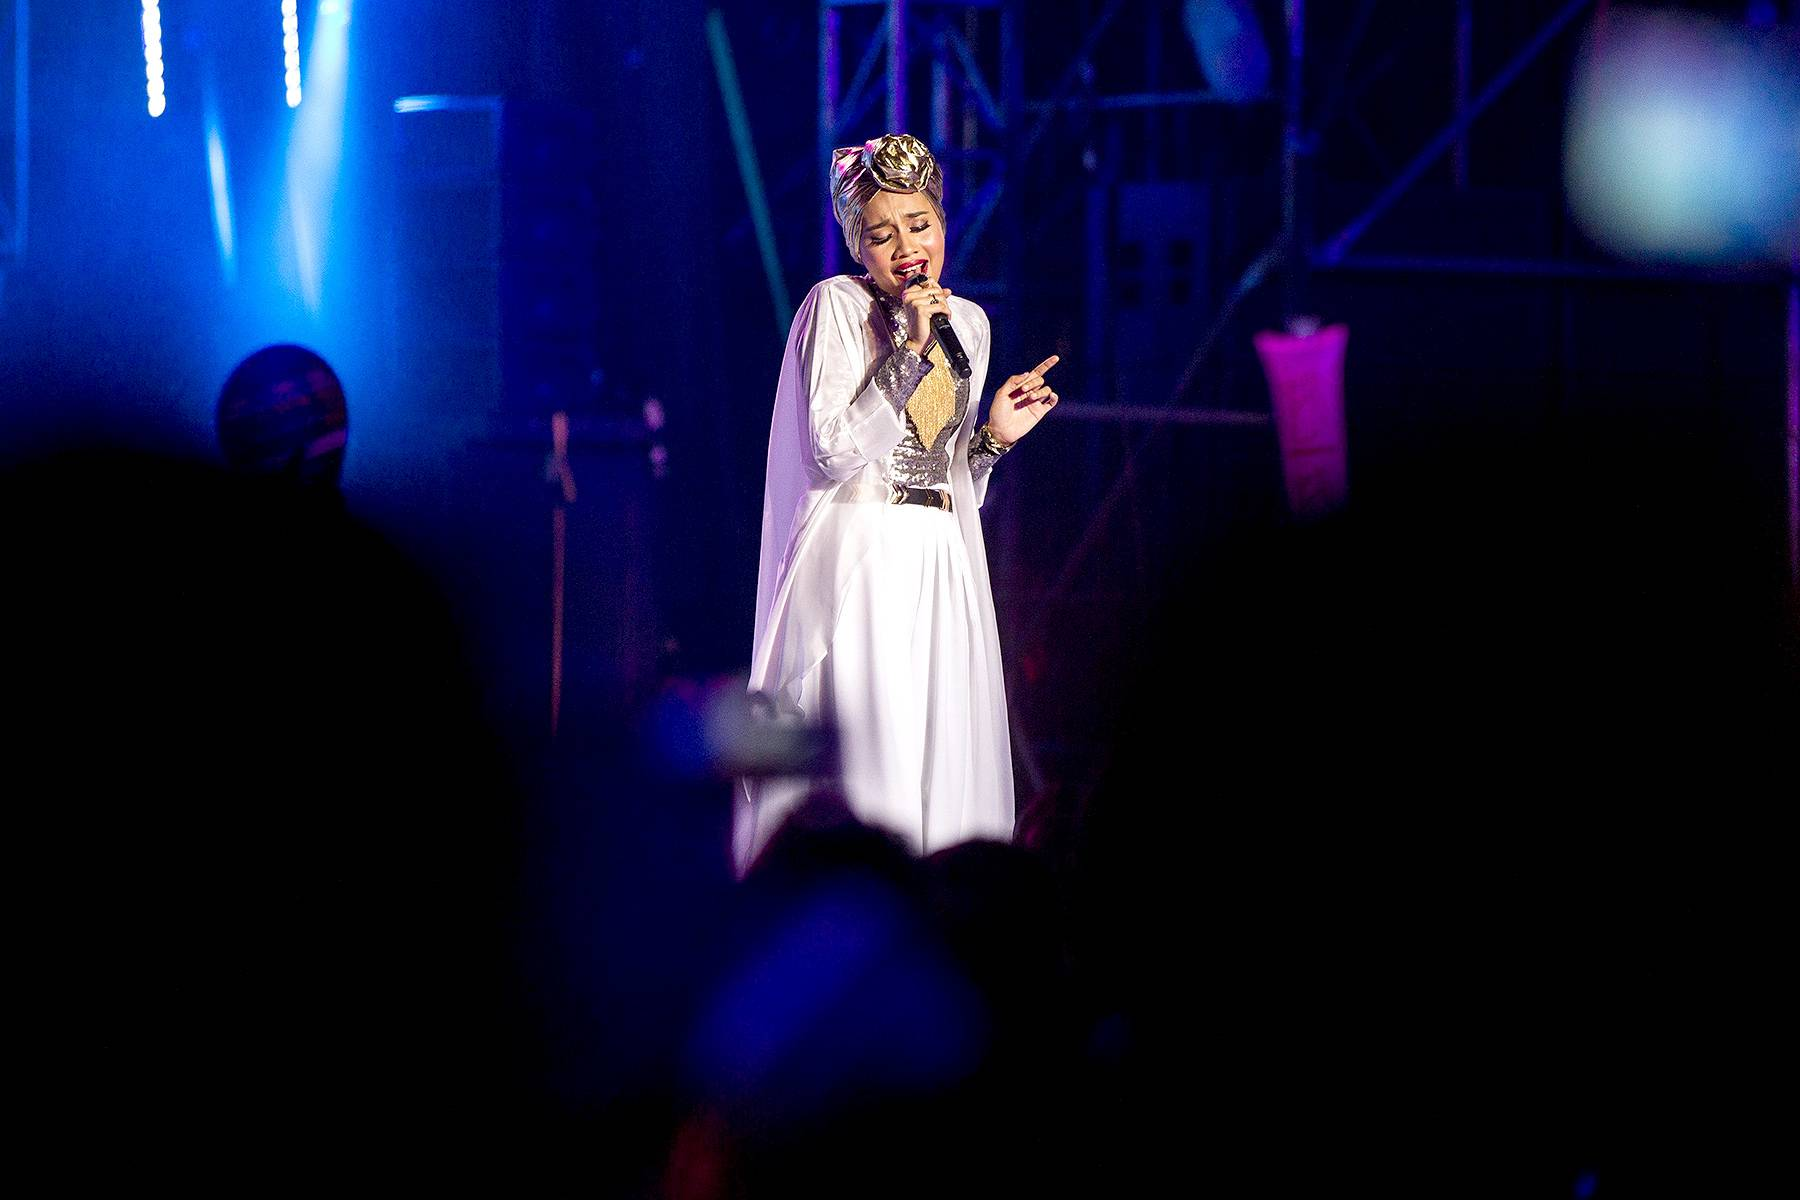 """""""Lullabies"""" by Yuna - Be sure to check out10 Things You Should Know About Yuna from BET Music. (Photo: Azhar Rahim/EPA/Landov)"""